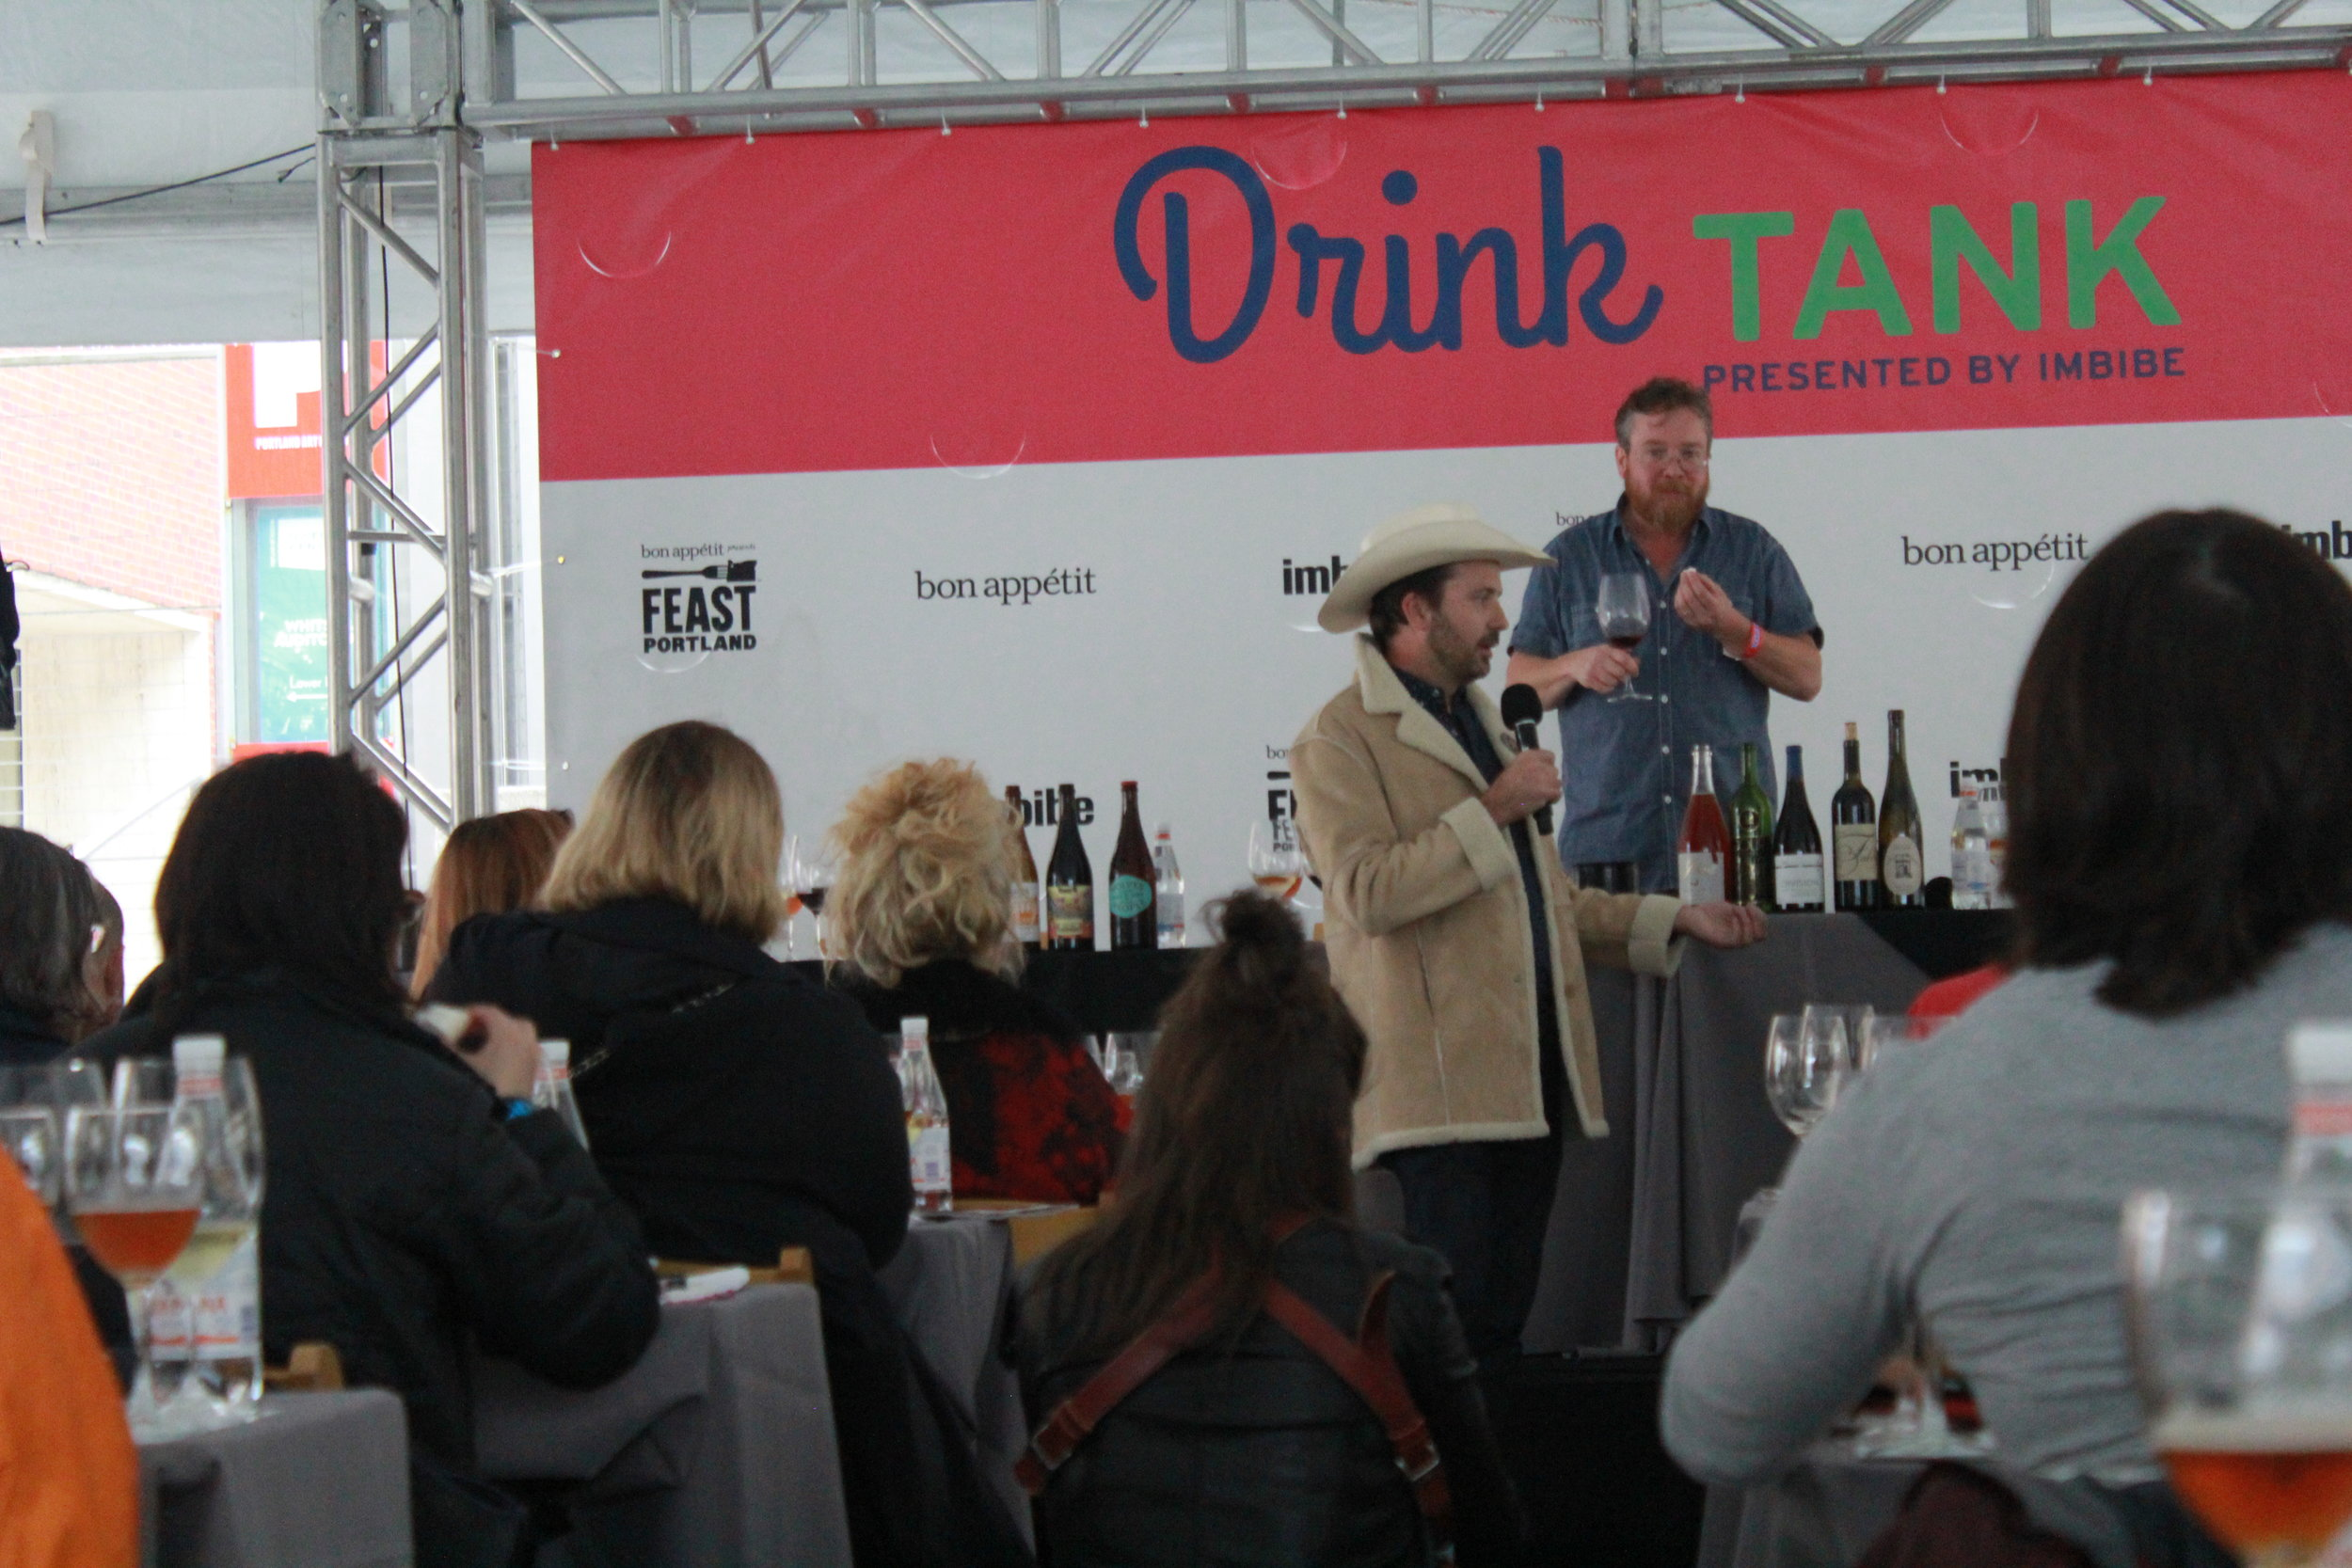 DRINK TANK PRESENTED BY IMBIBE FEAST PORTLAND